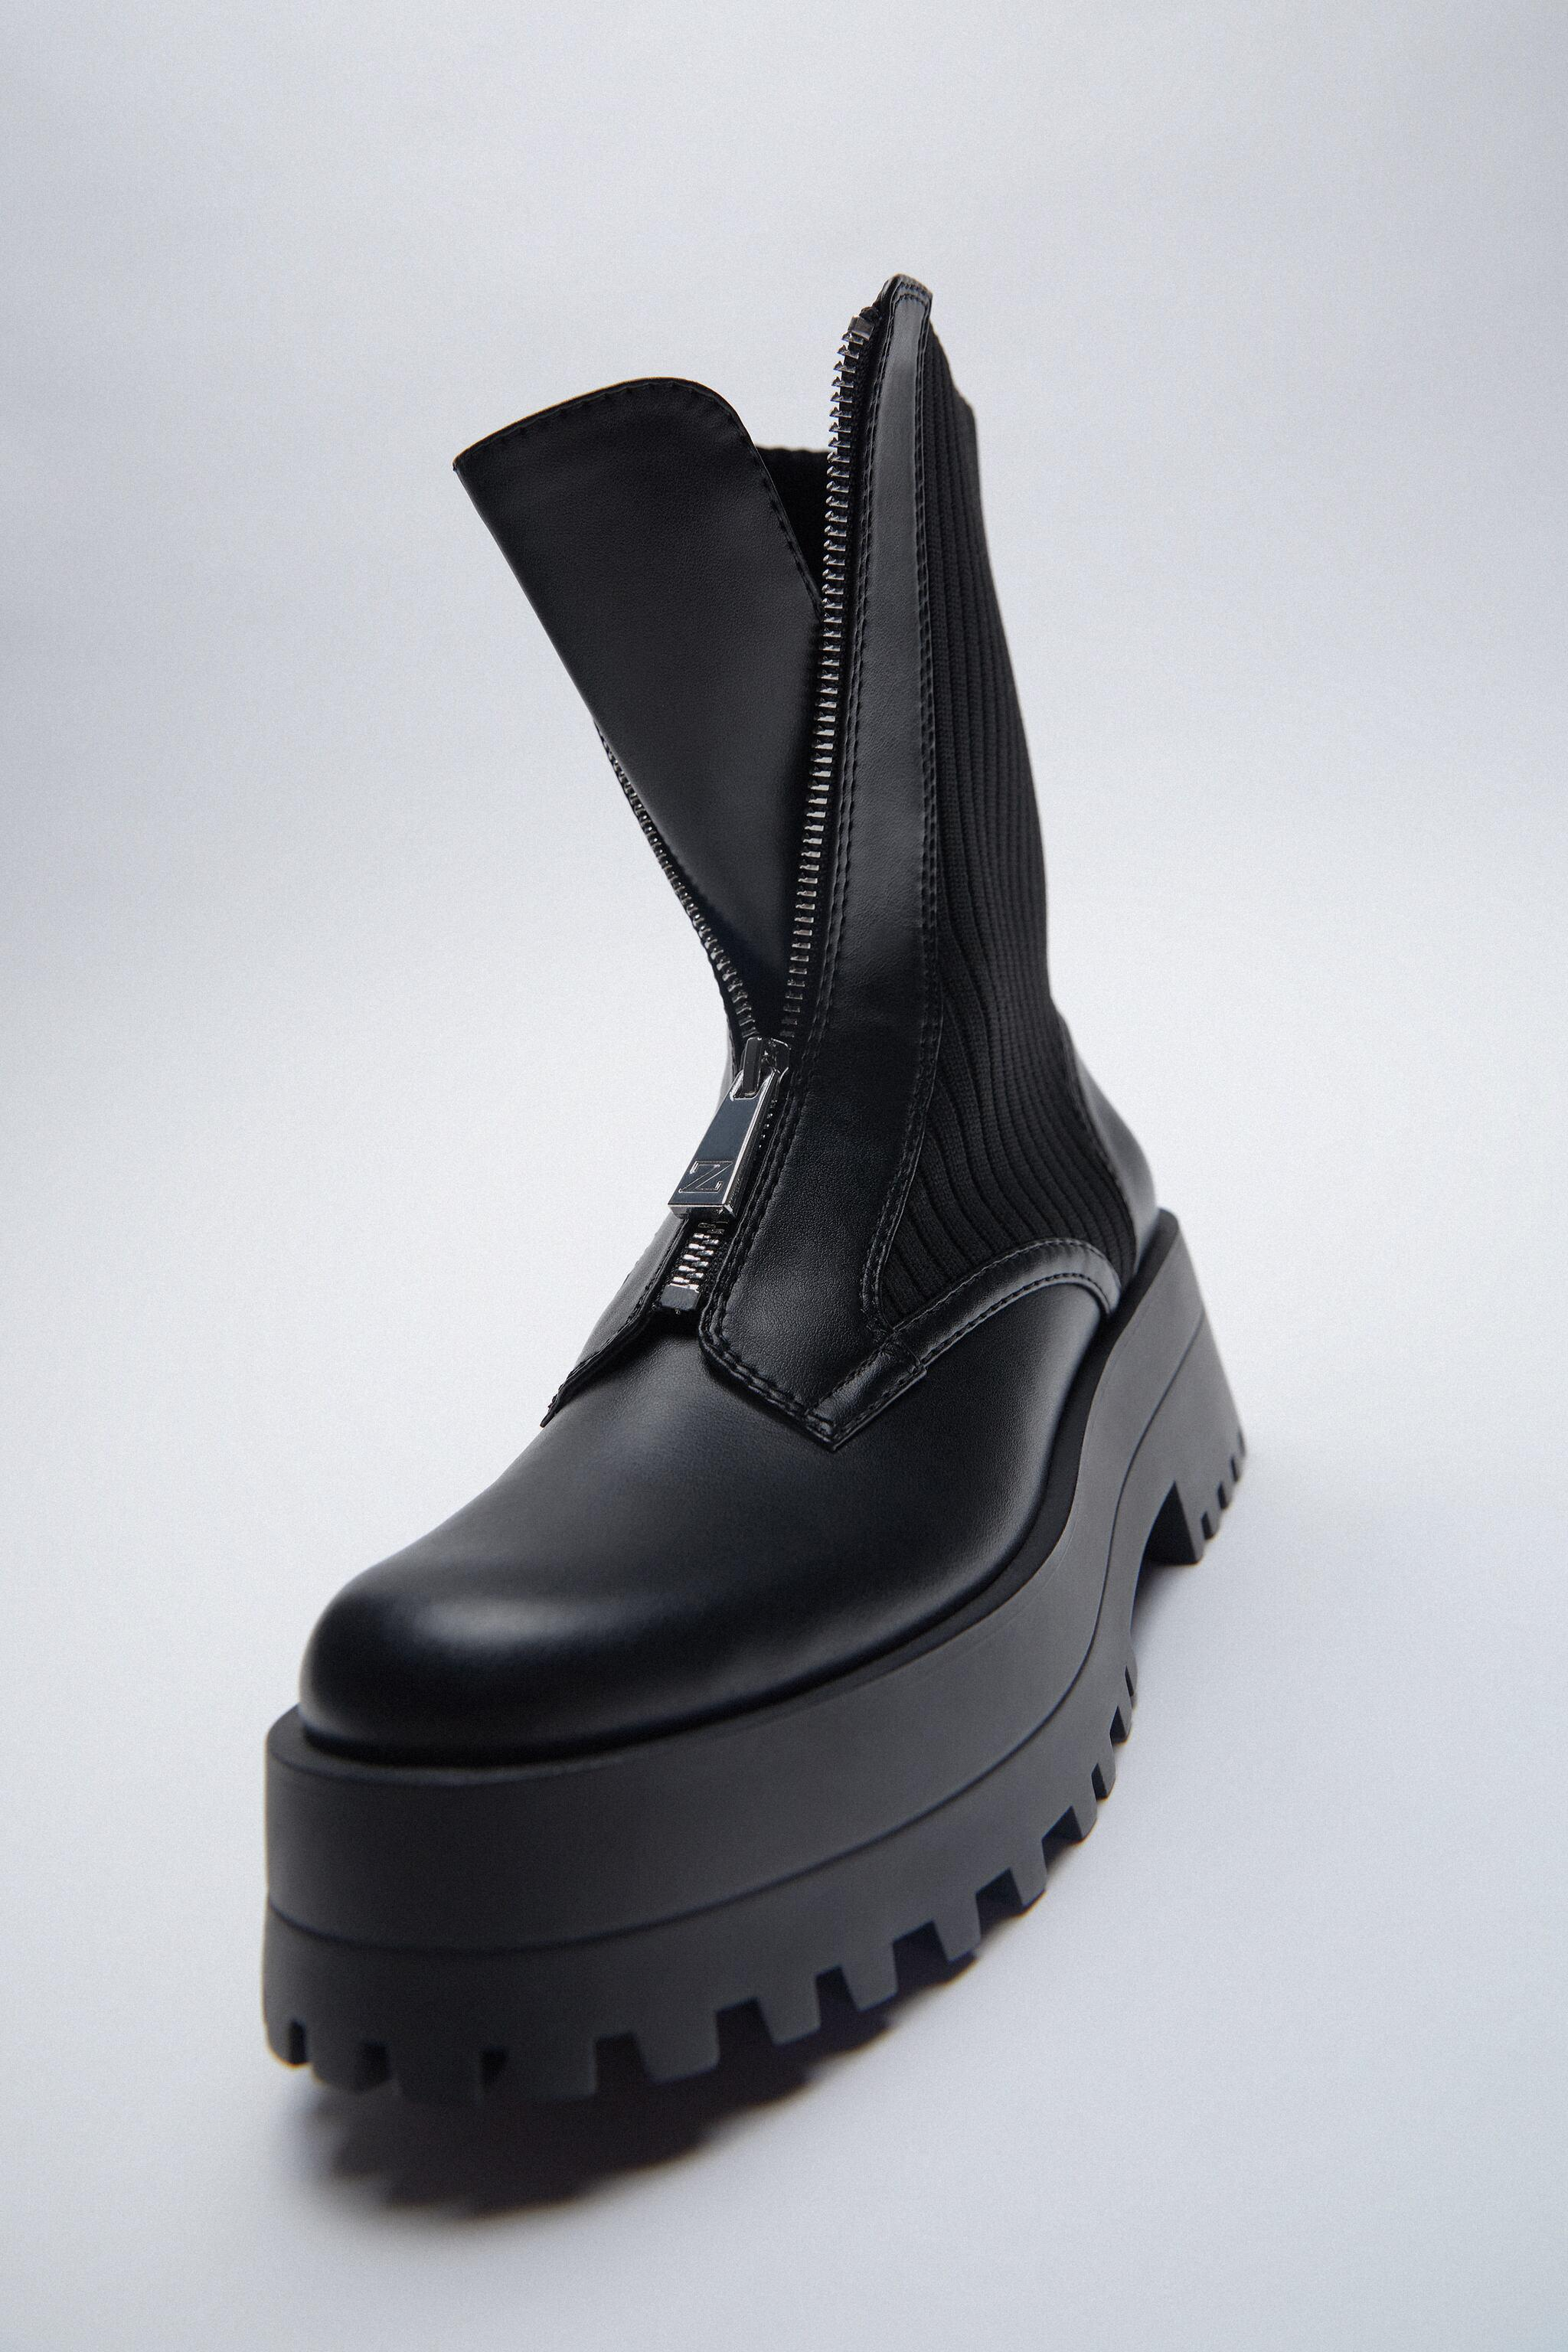 LOW HEELED SOCK-STYLE ZIP ANKLE BOOTS TRF 1